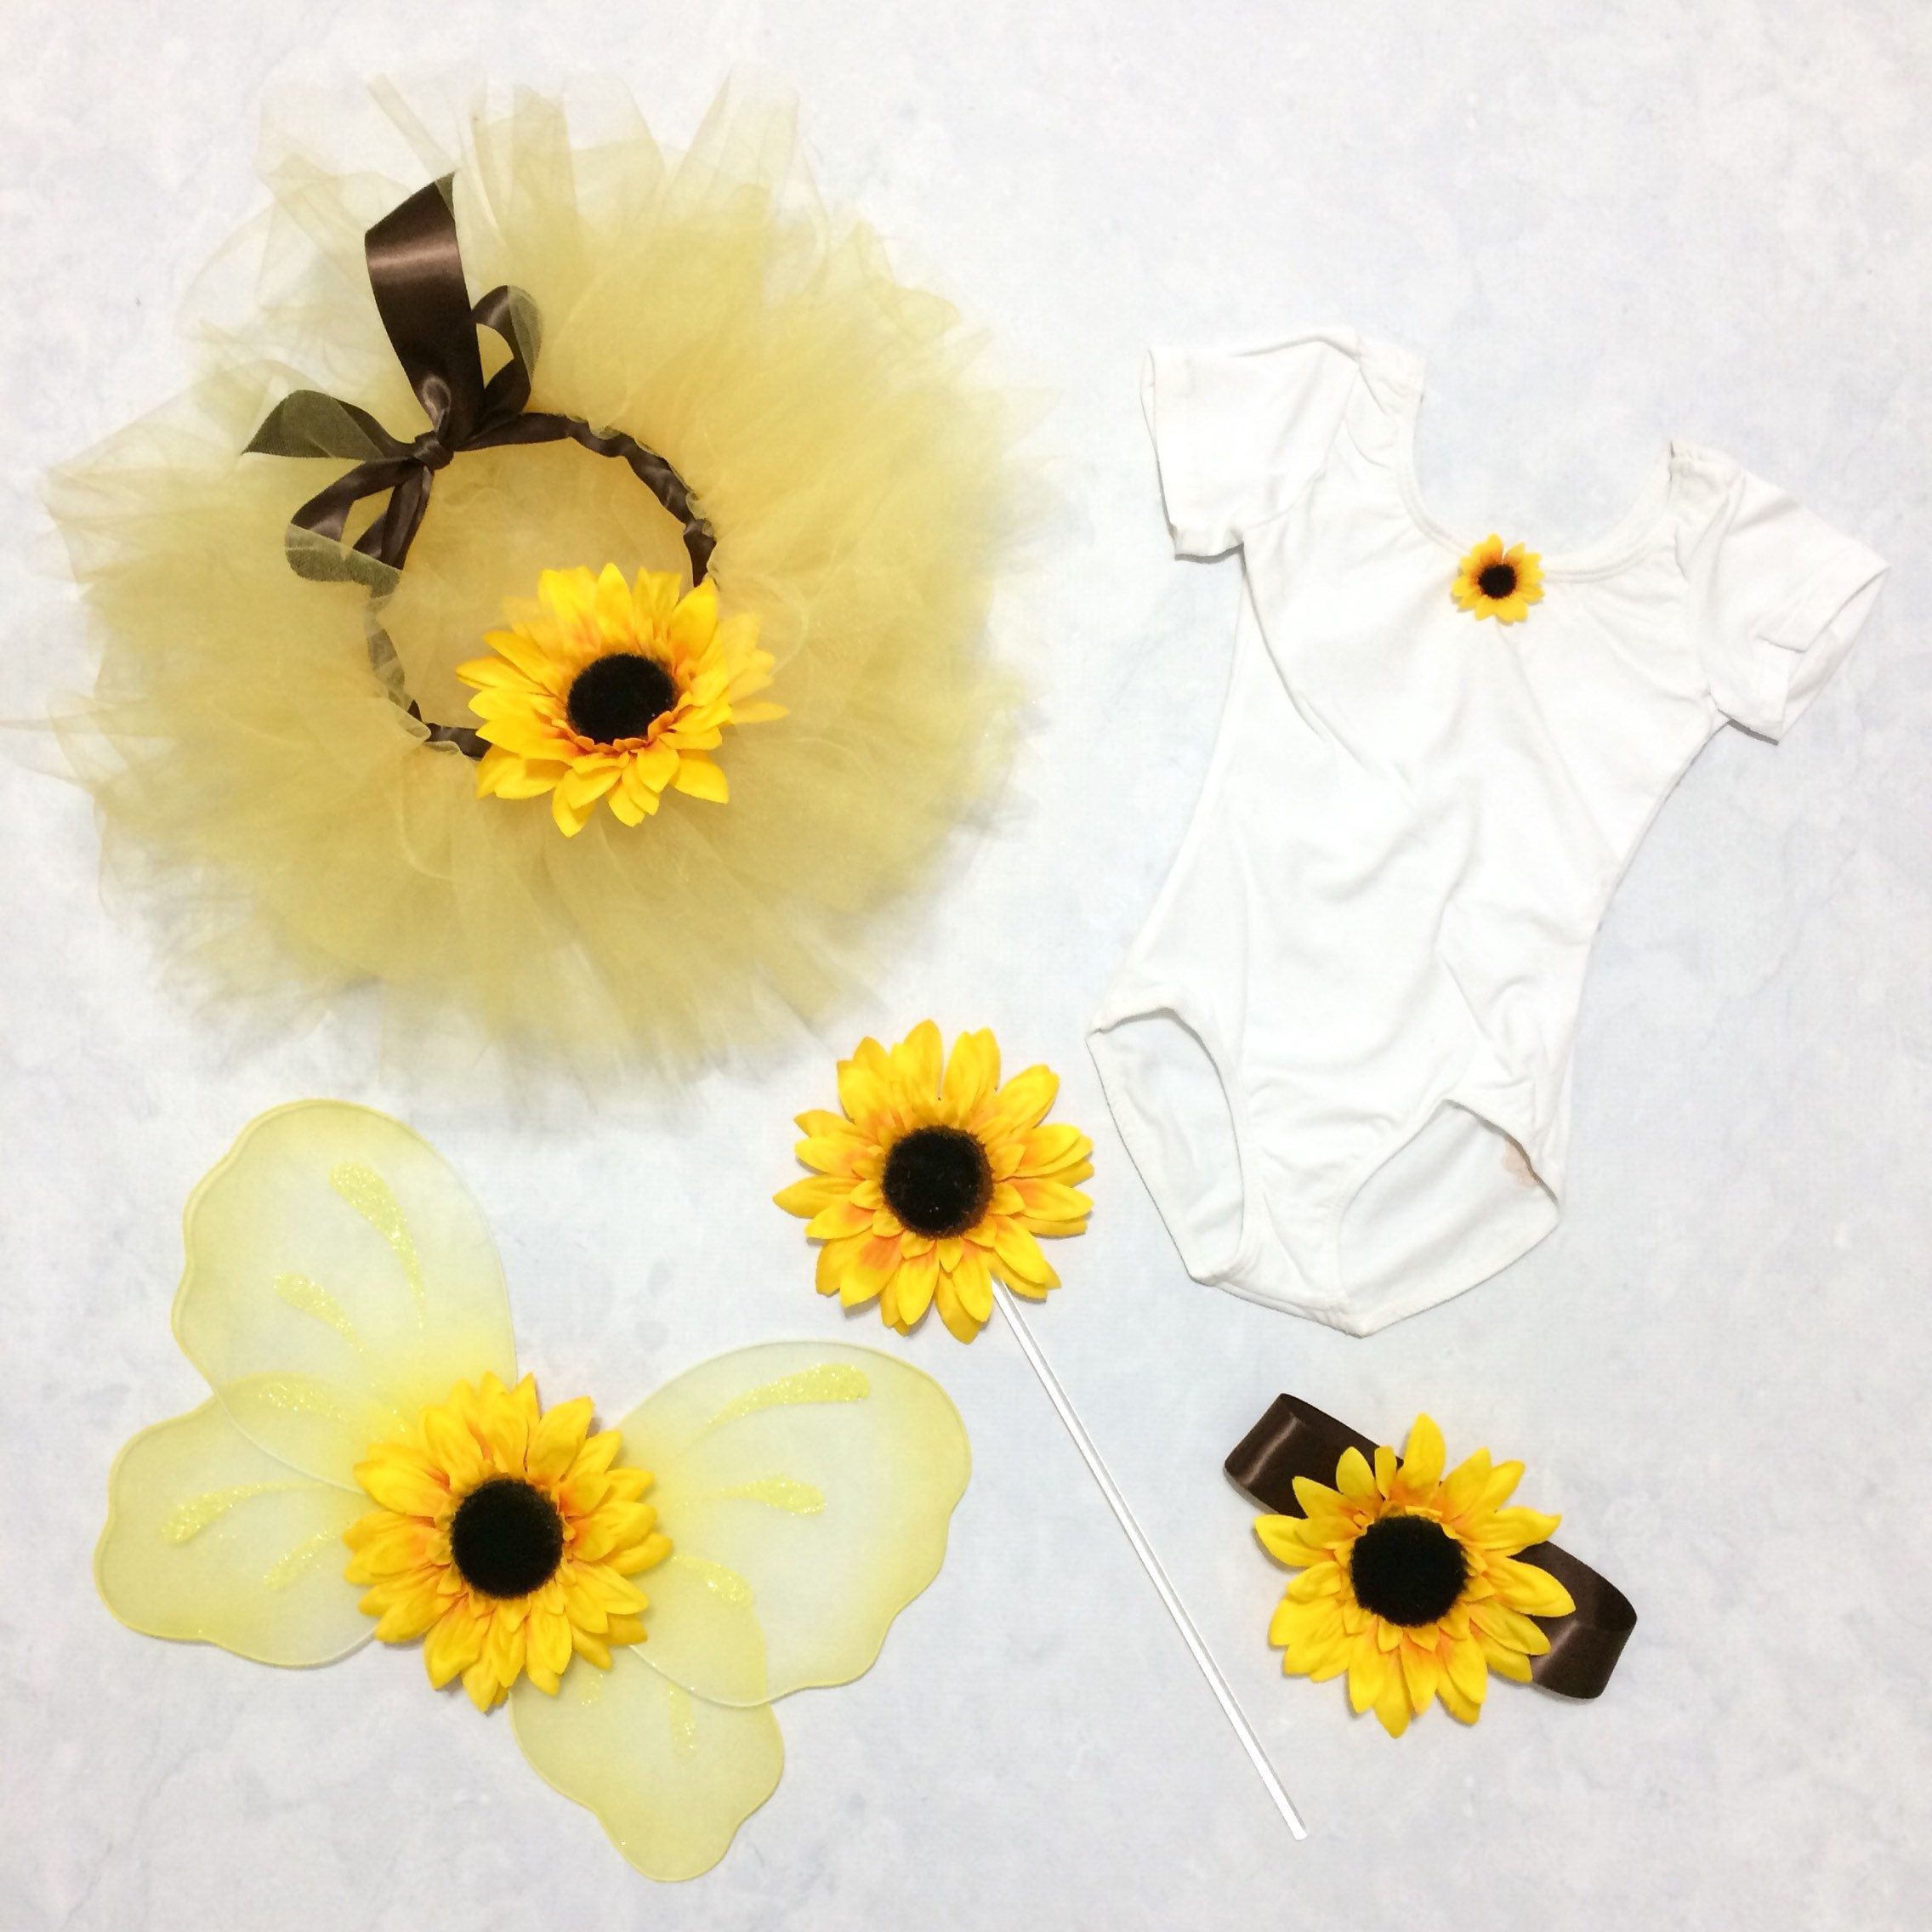 5ec71d04c7b27 Sunflower Tutu Fairy Costume Autumn Wedding Flower Girl Dress Fall Photo  Prop Woodland Nature Child Toddler Halloween Party Dress-up Outfit